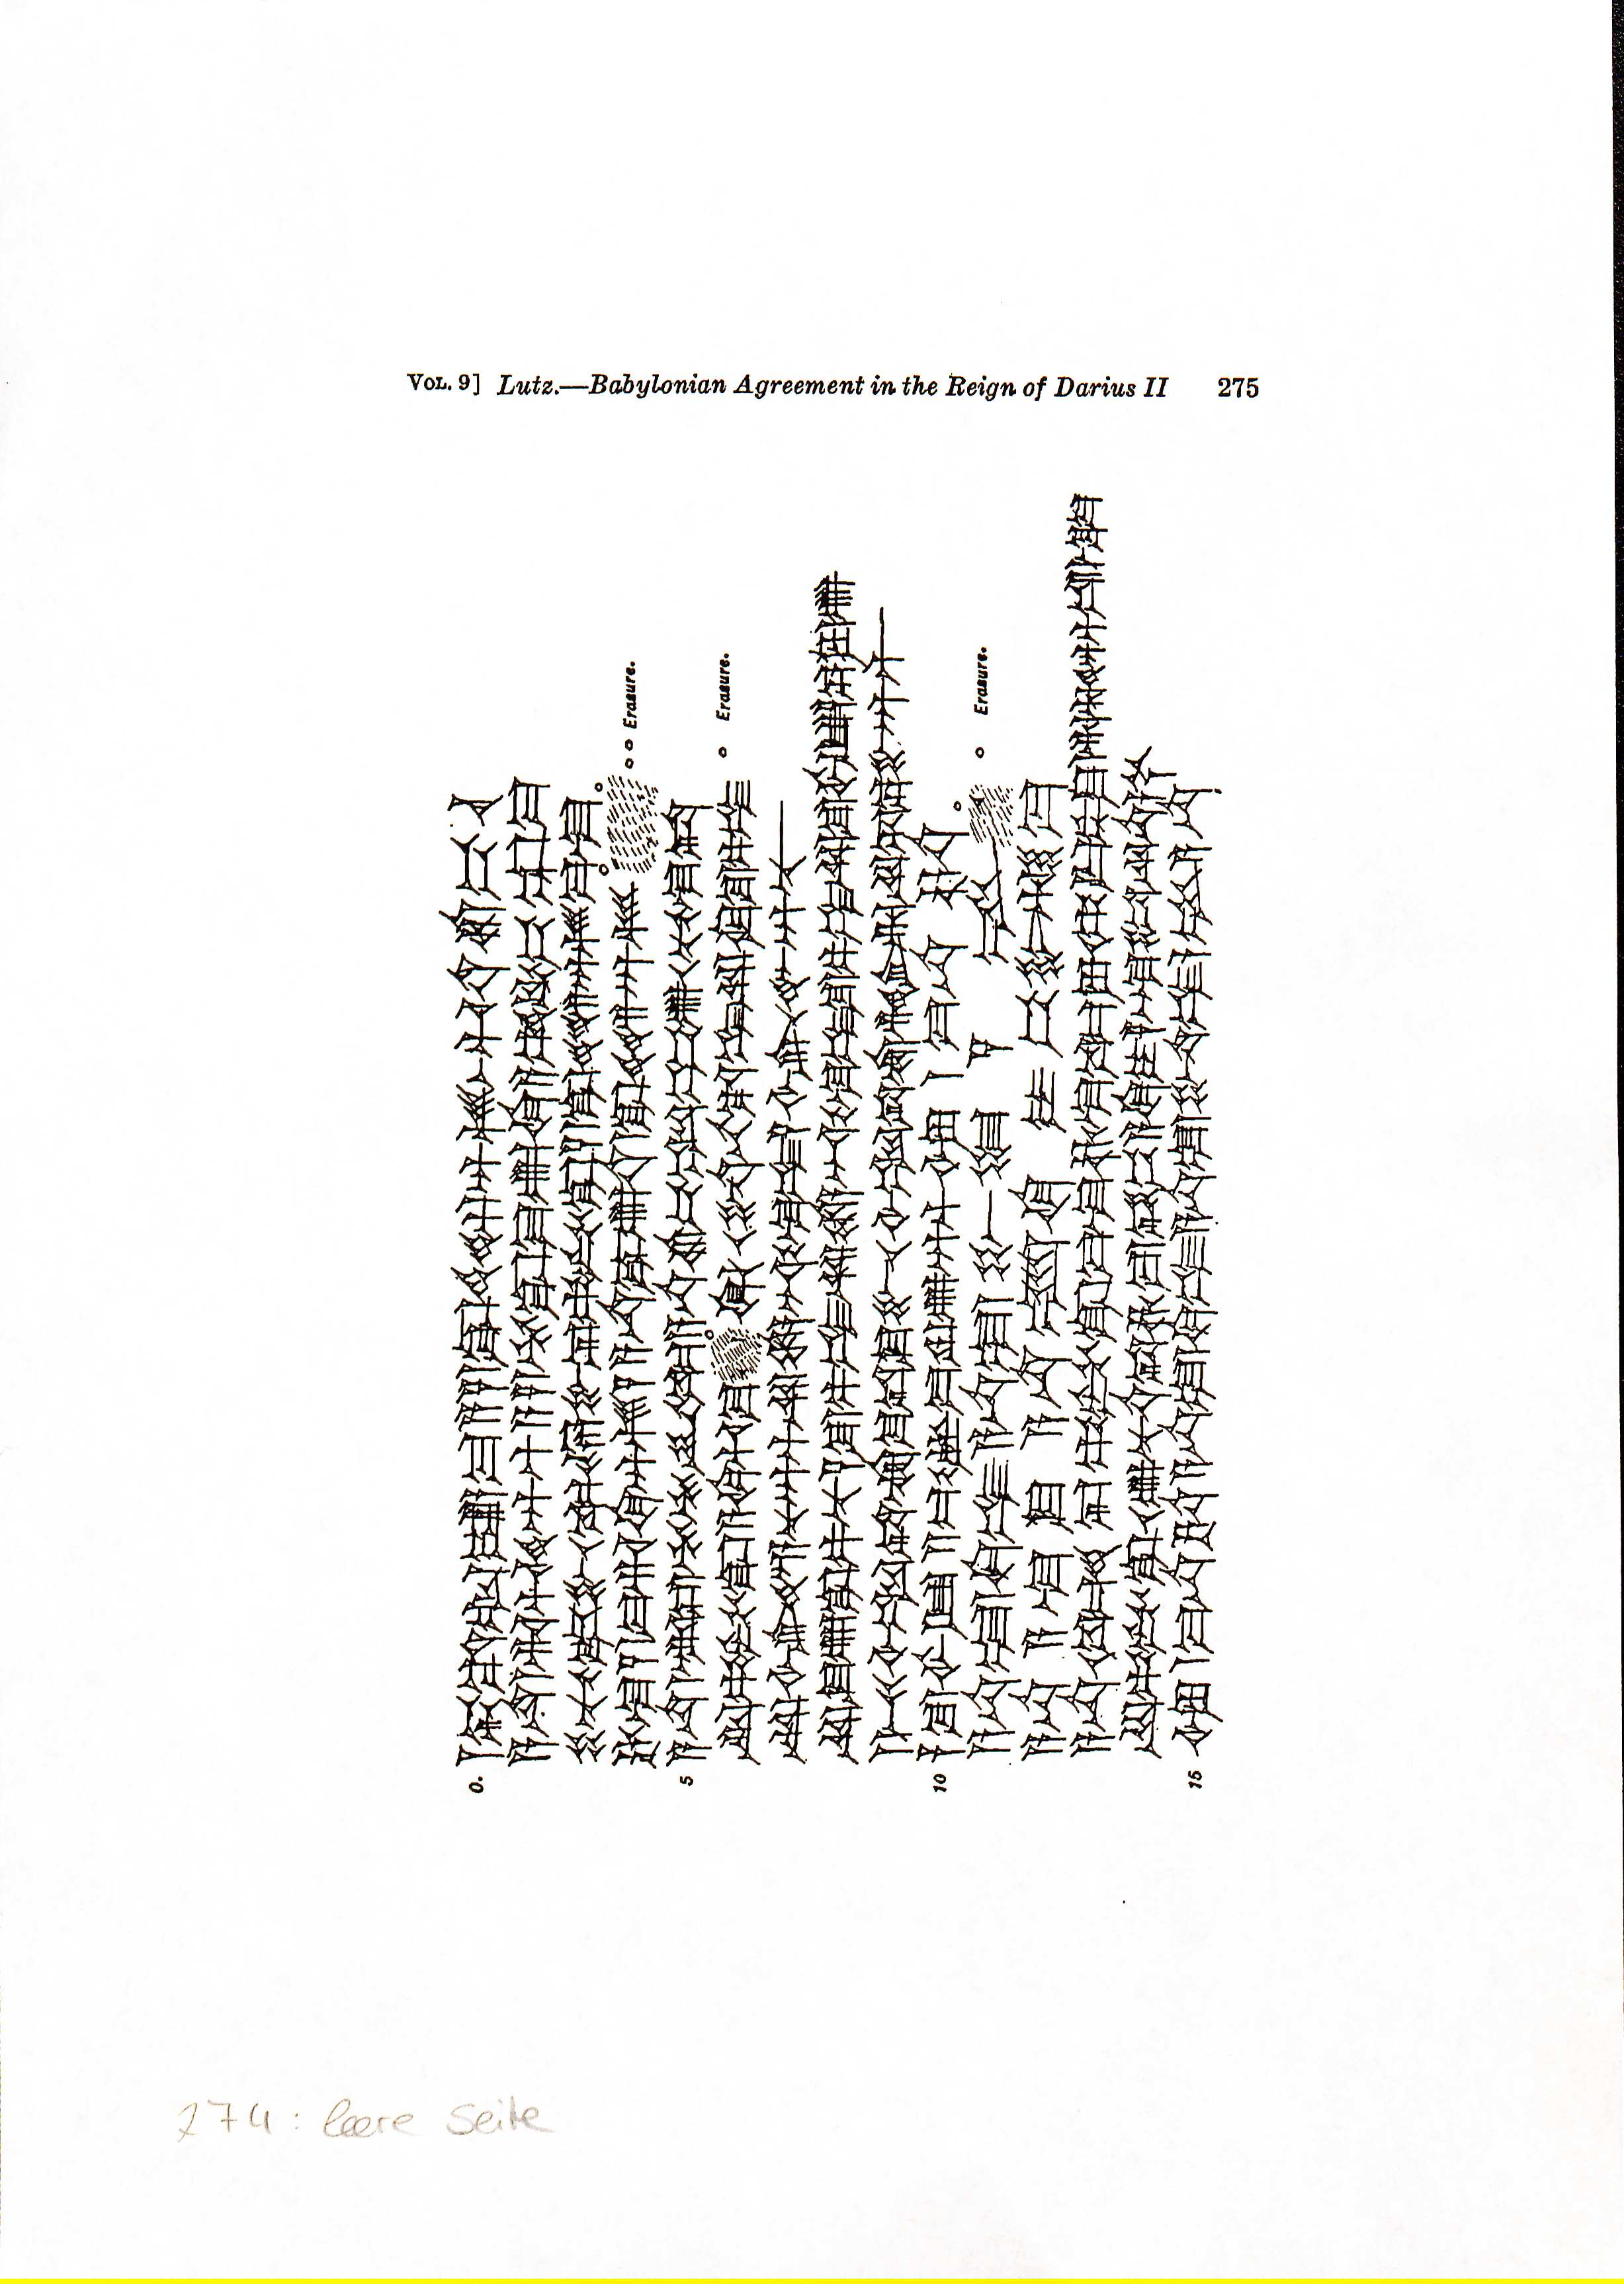 A drawing of cuneiform signs and seal impressions